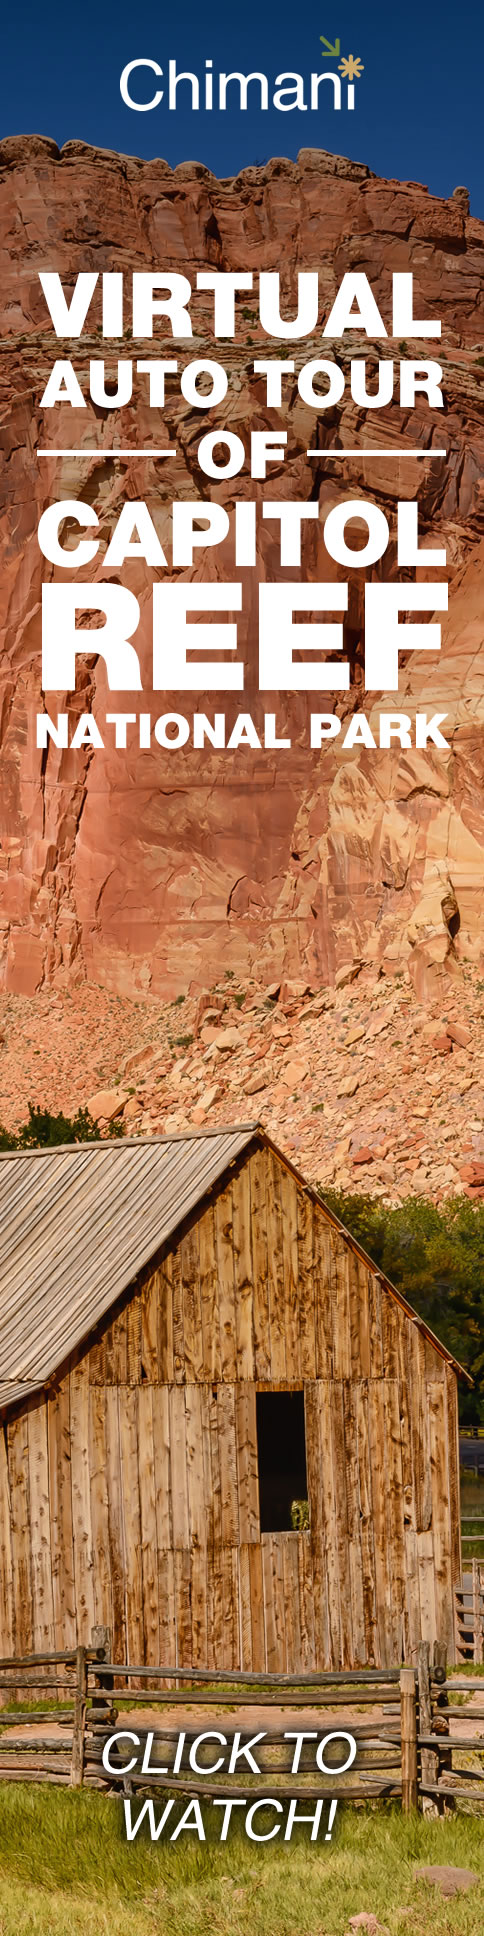 Capitol Reef National Park in central Utah tends to be overshadowed by its other four siblings, Utah's mighty Arches, Bryce Canyon, Canyonlands, and Zion. After all, with all of that beautiful red rock that Utah has been blessed with, you could make the argument that most of the state should be a giant national park.  Watch our Auto Tour of Capitol Reef National Park here: https://blog.chimani.com/2016/10/24/auto-tour-capitol-reef-national-park-in-utah/